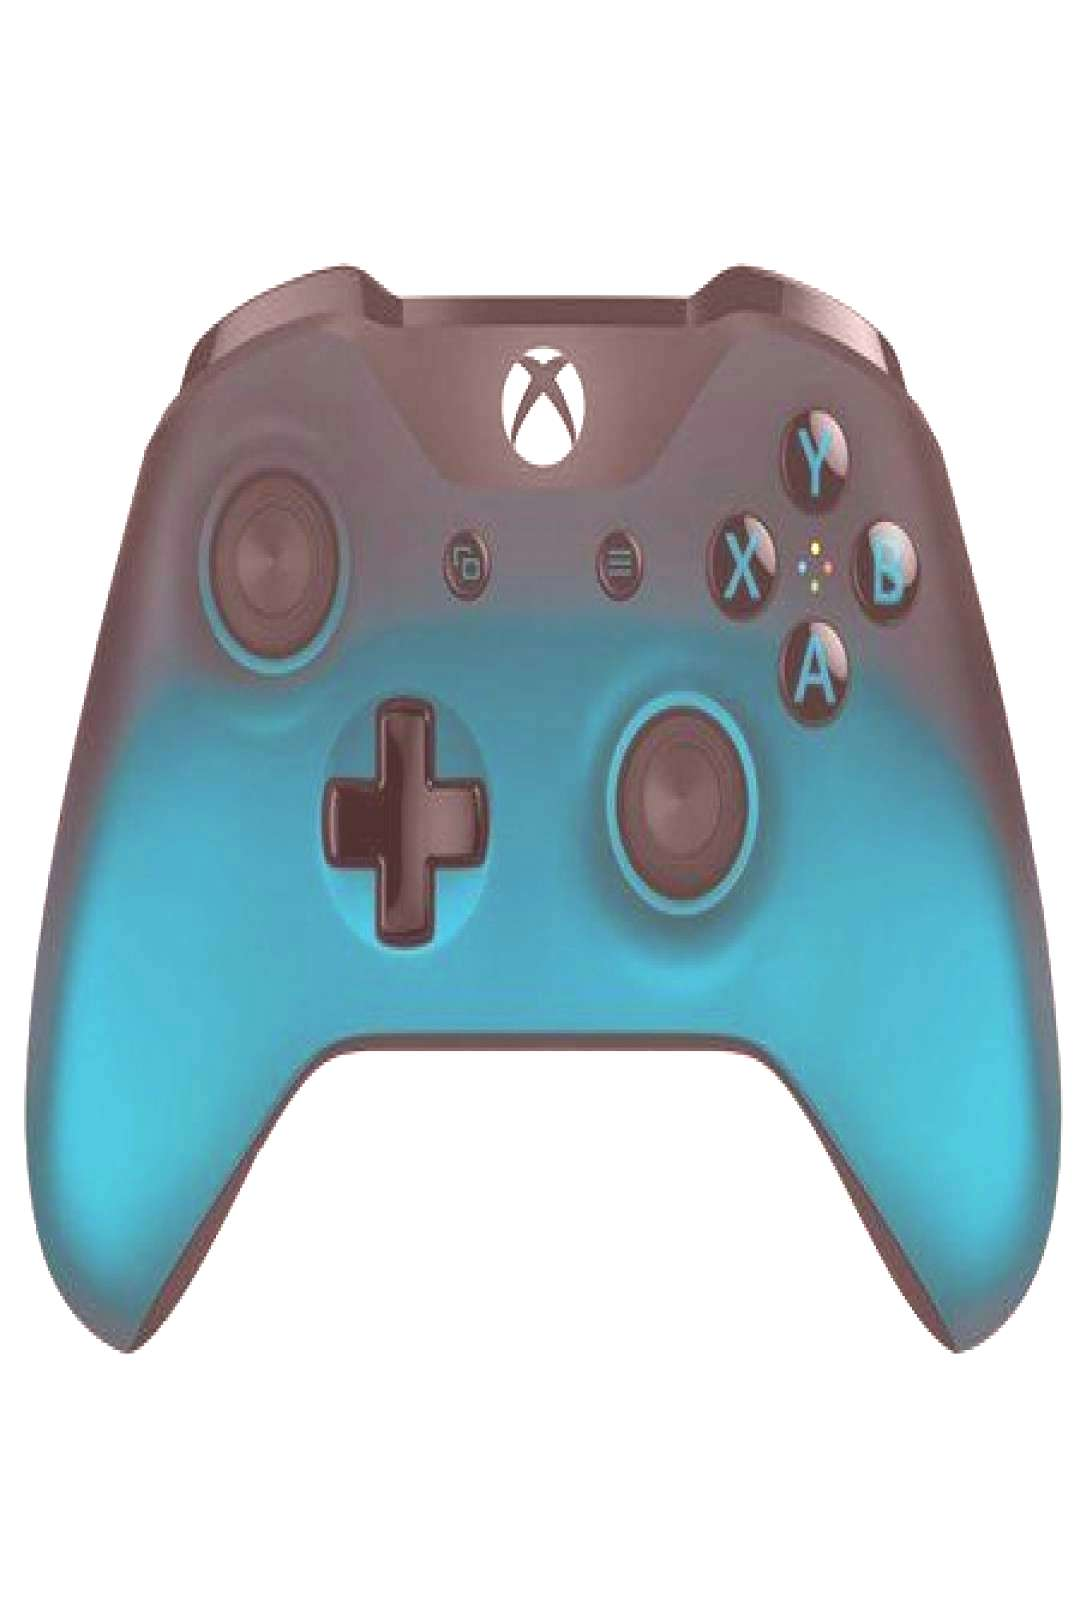 Microsoft Xbox One Wireless Controller Special Edition - Ocean Shadow, SilverYou can find Xbox one